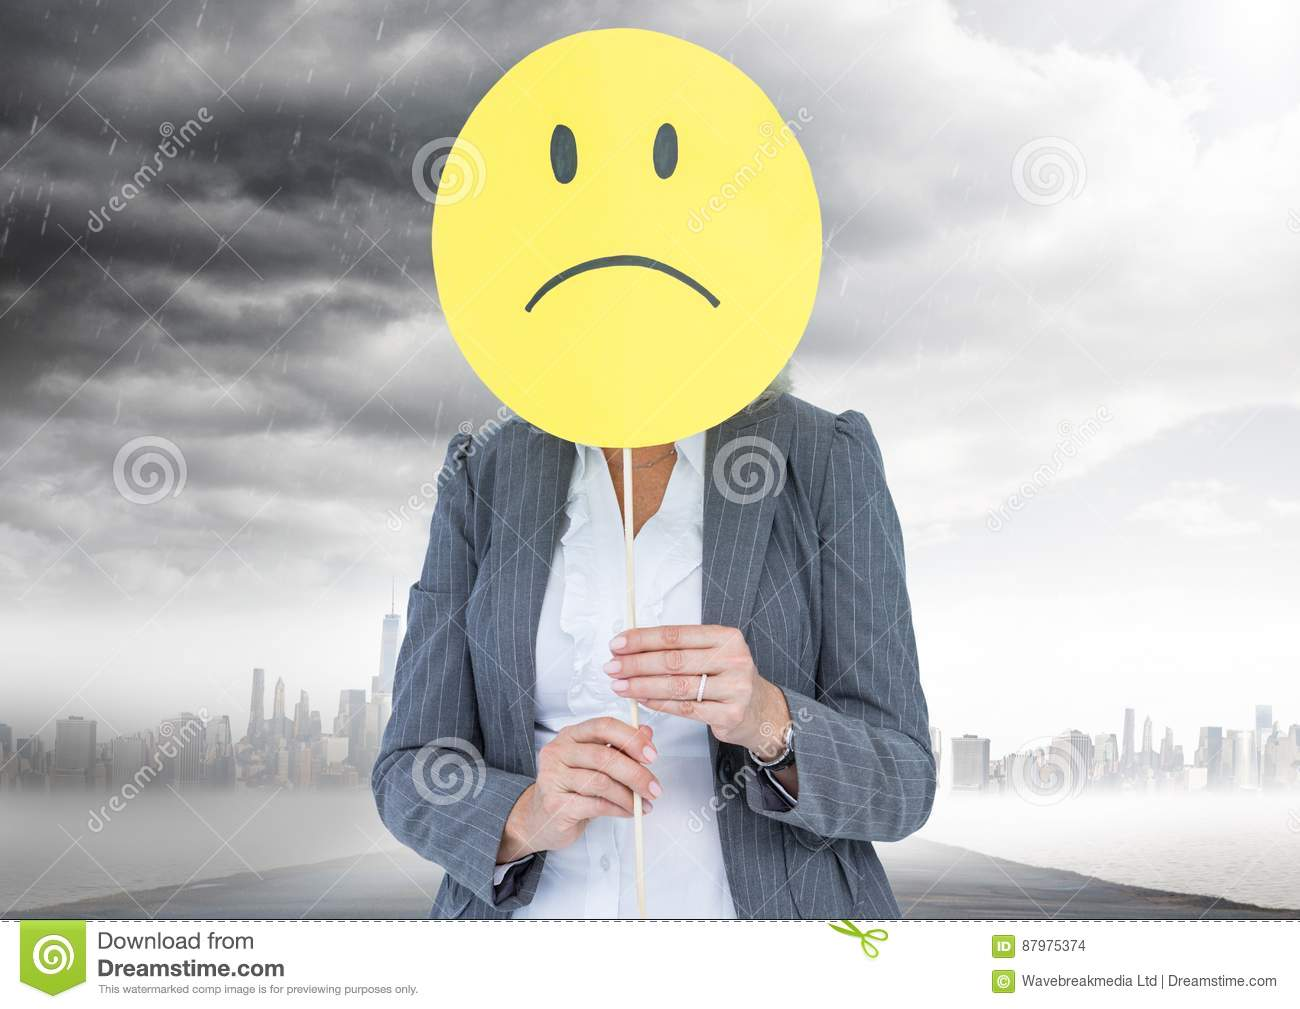 Businesswoman Holding A Smiley Face In Front Of Her Face With Rain